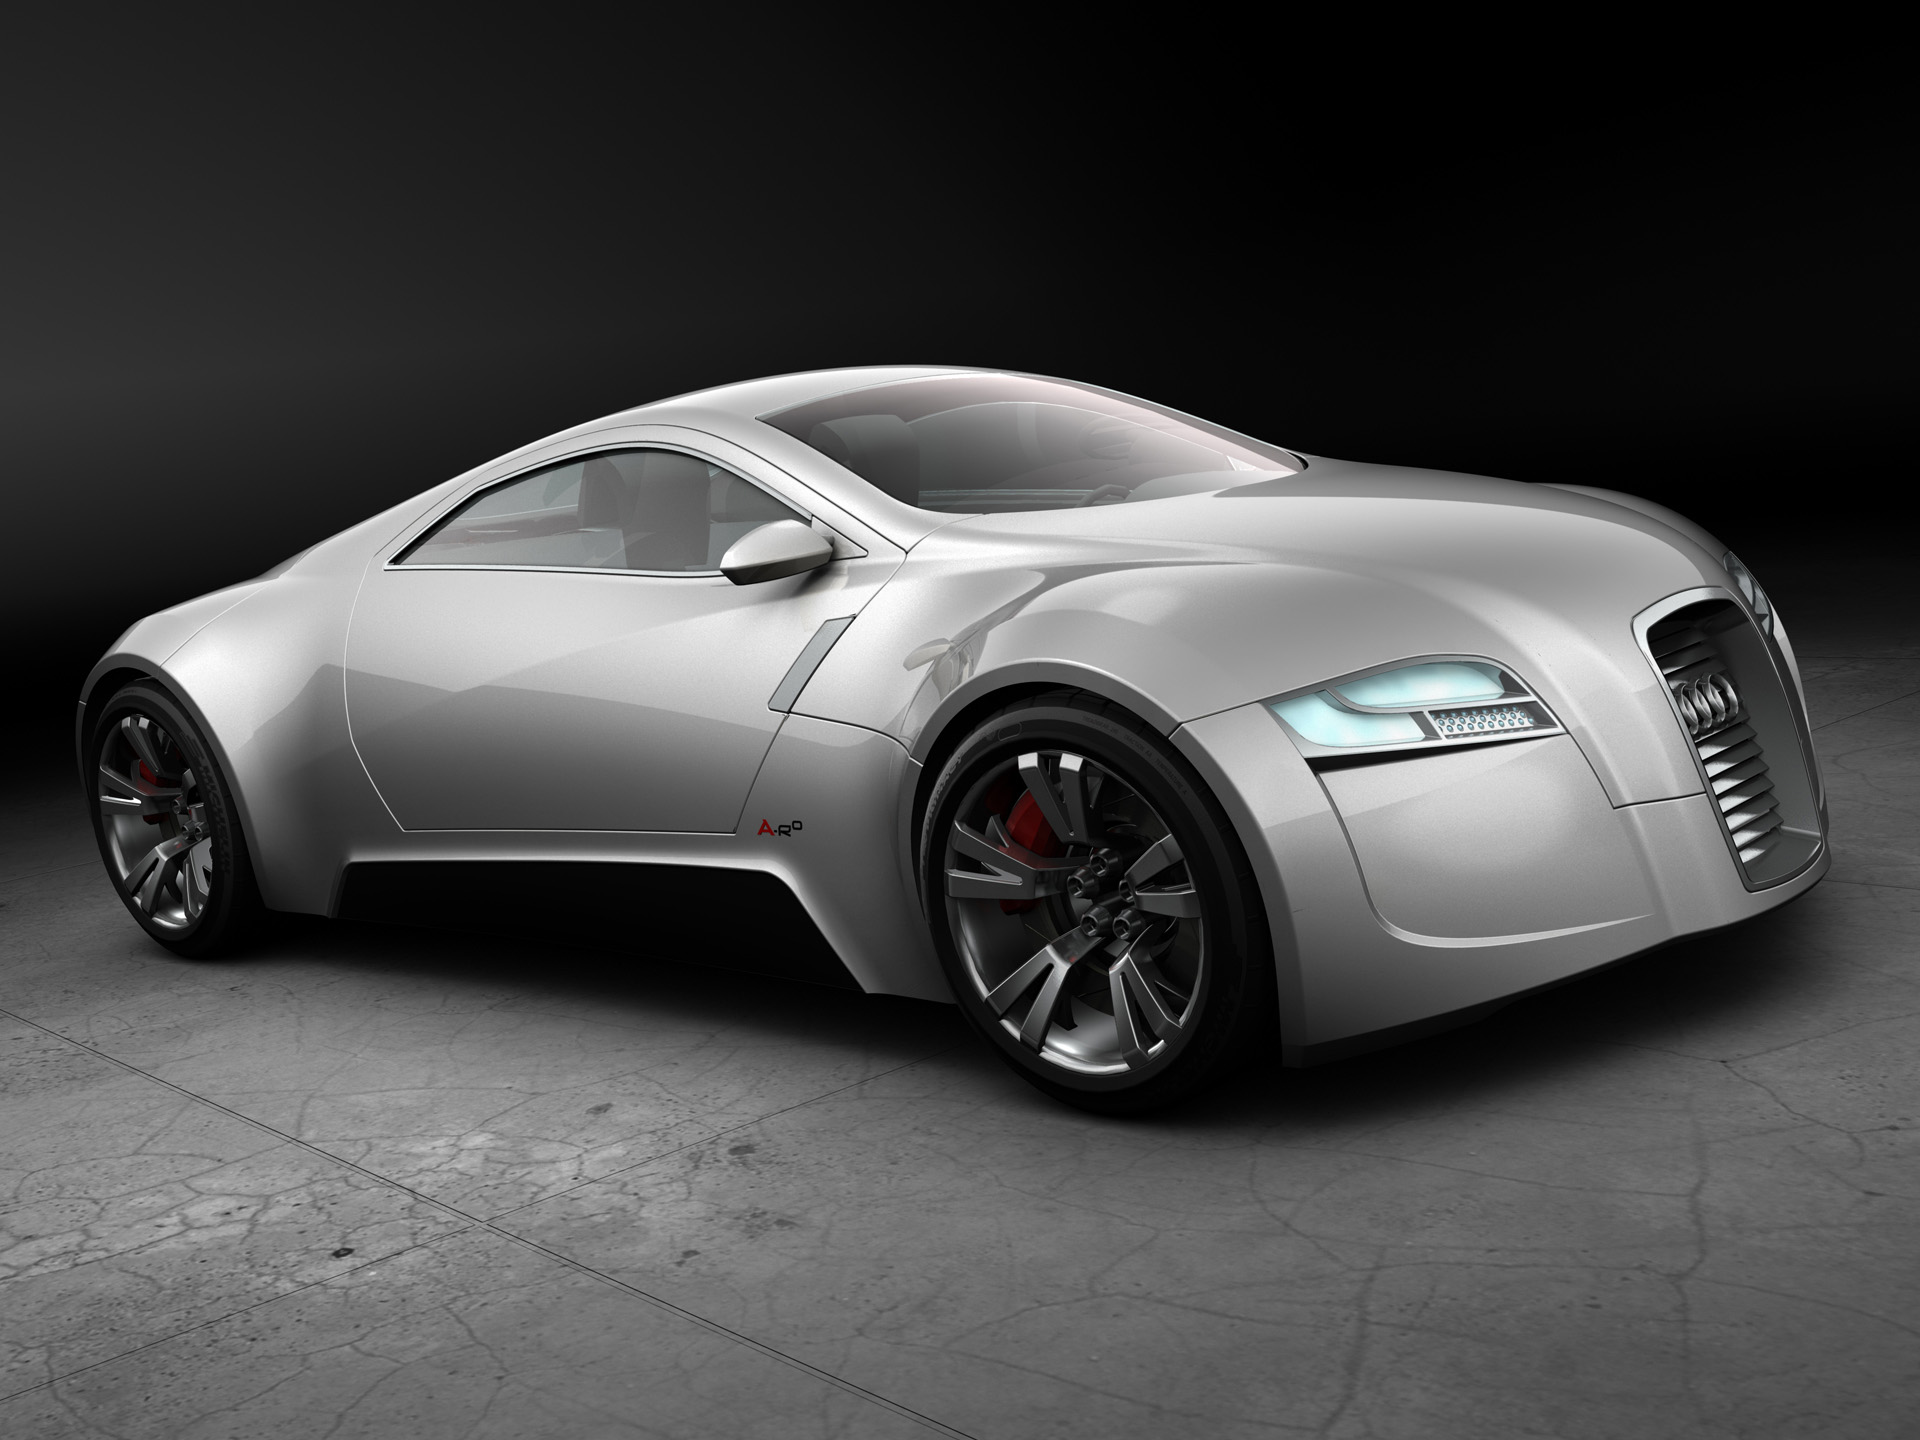 Audi Super Concept Car 279.82 Kb